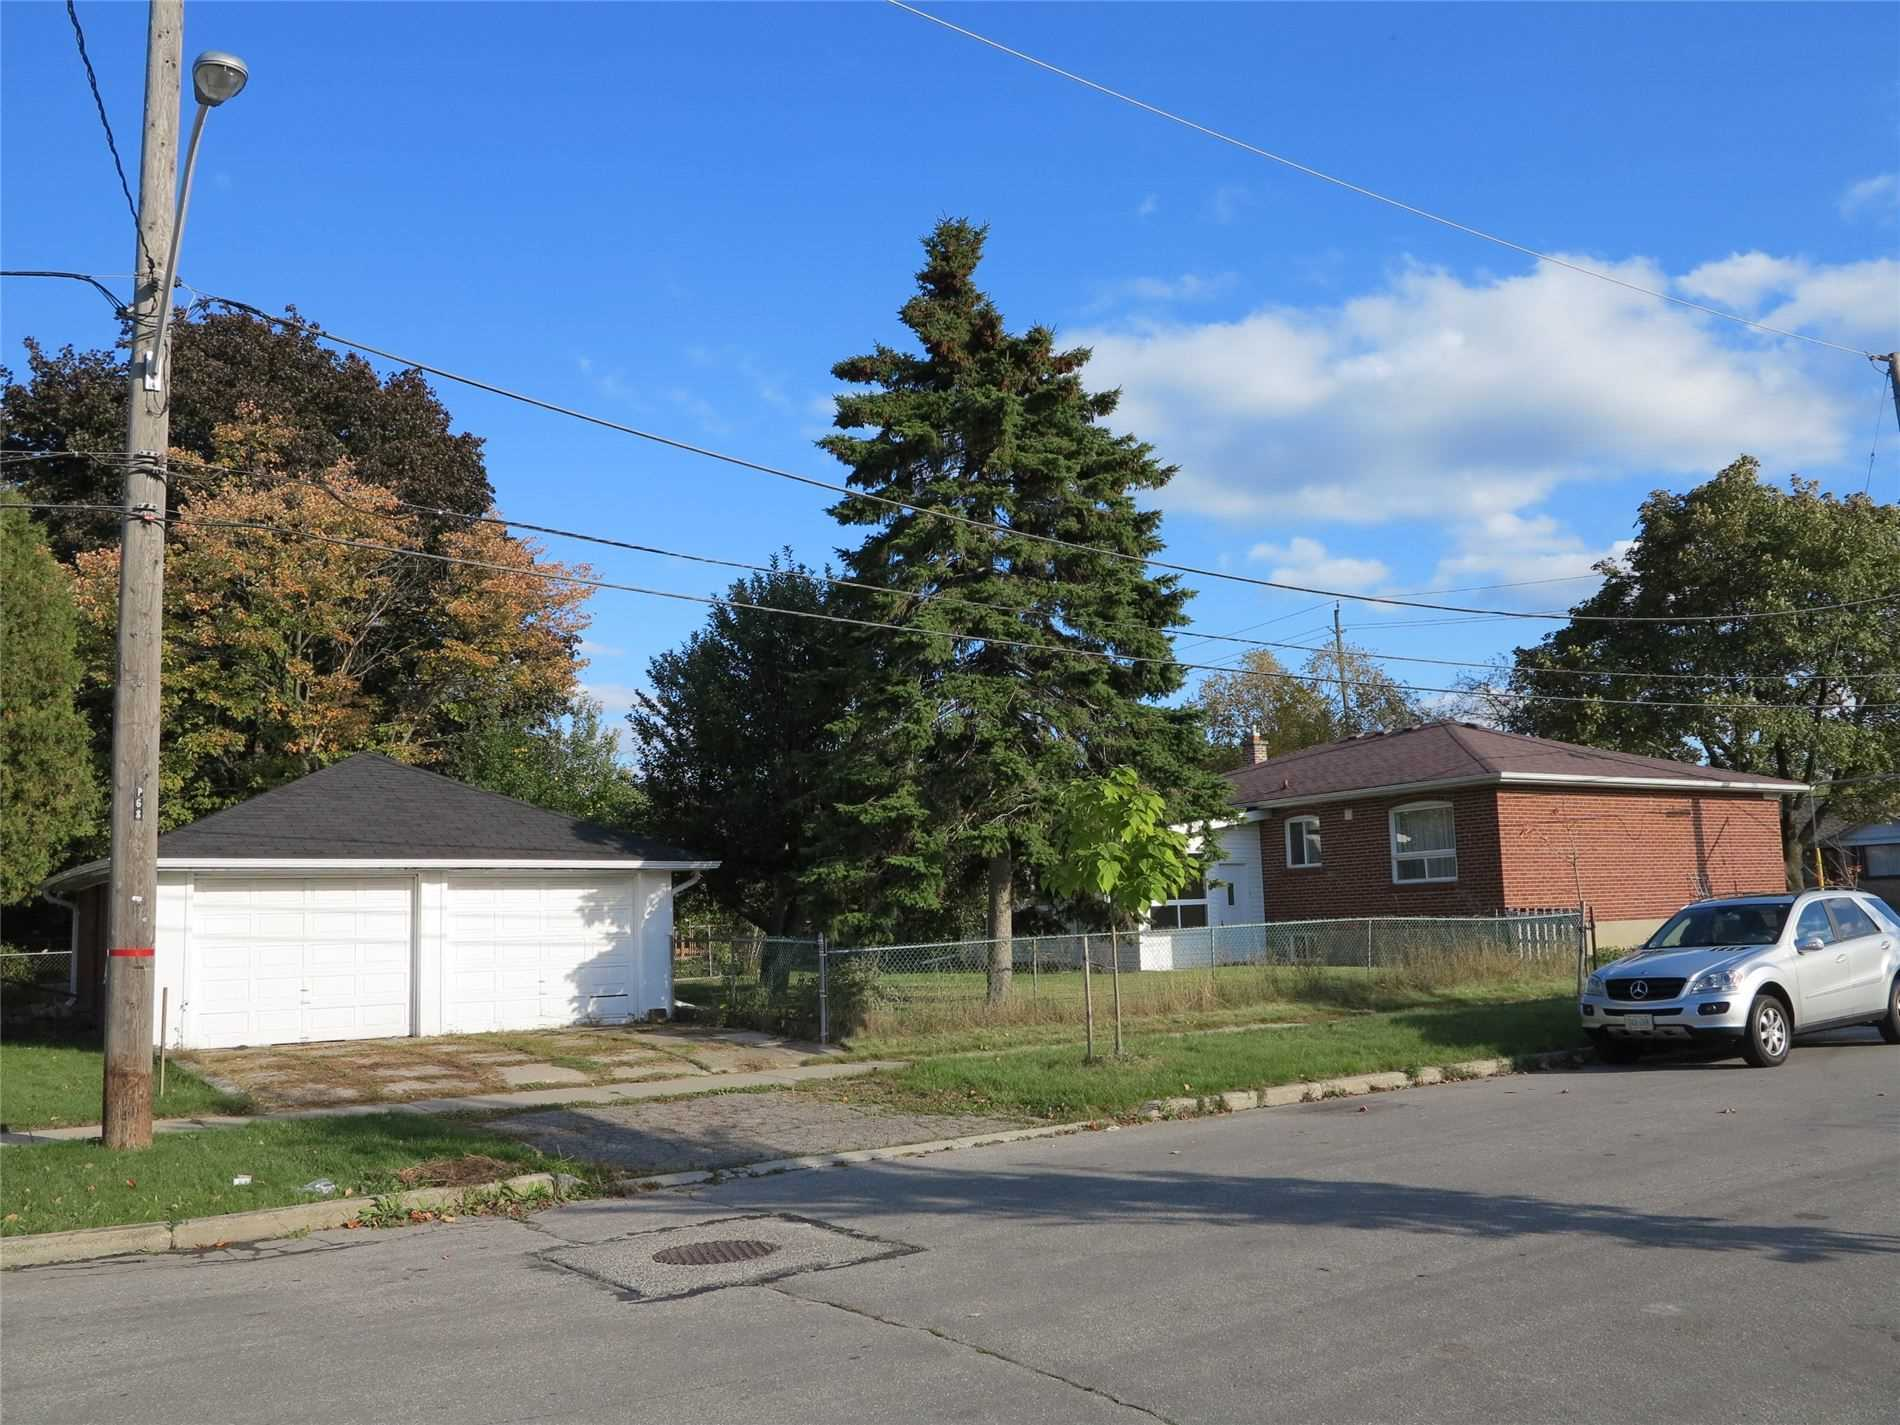 Image 10 of 30 showing inside of 3 Bedroom Detached Bungalow for Lease at 456 Drewry Ave, Toronto M2R2K7